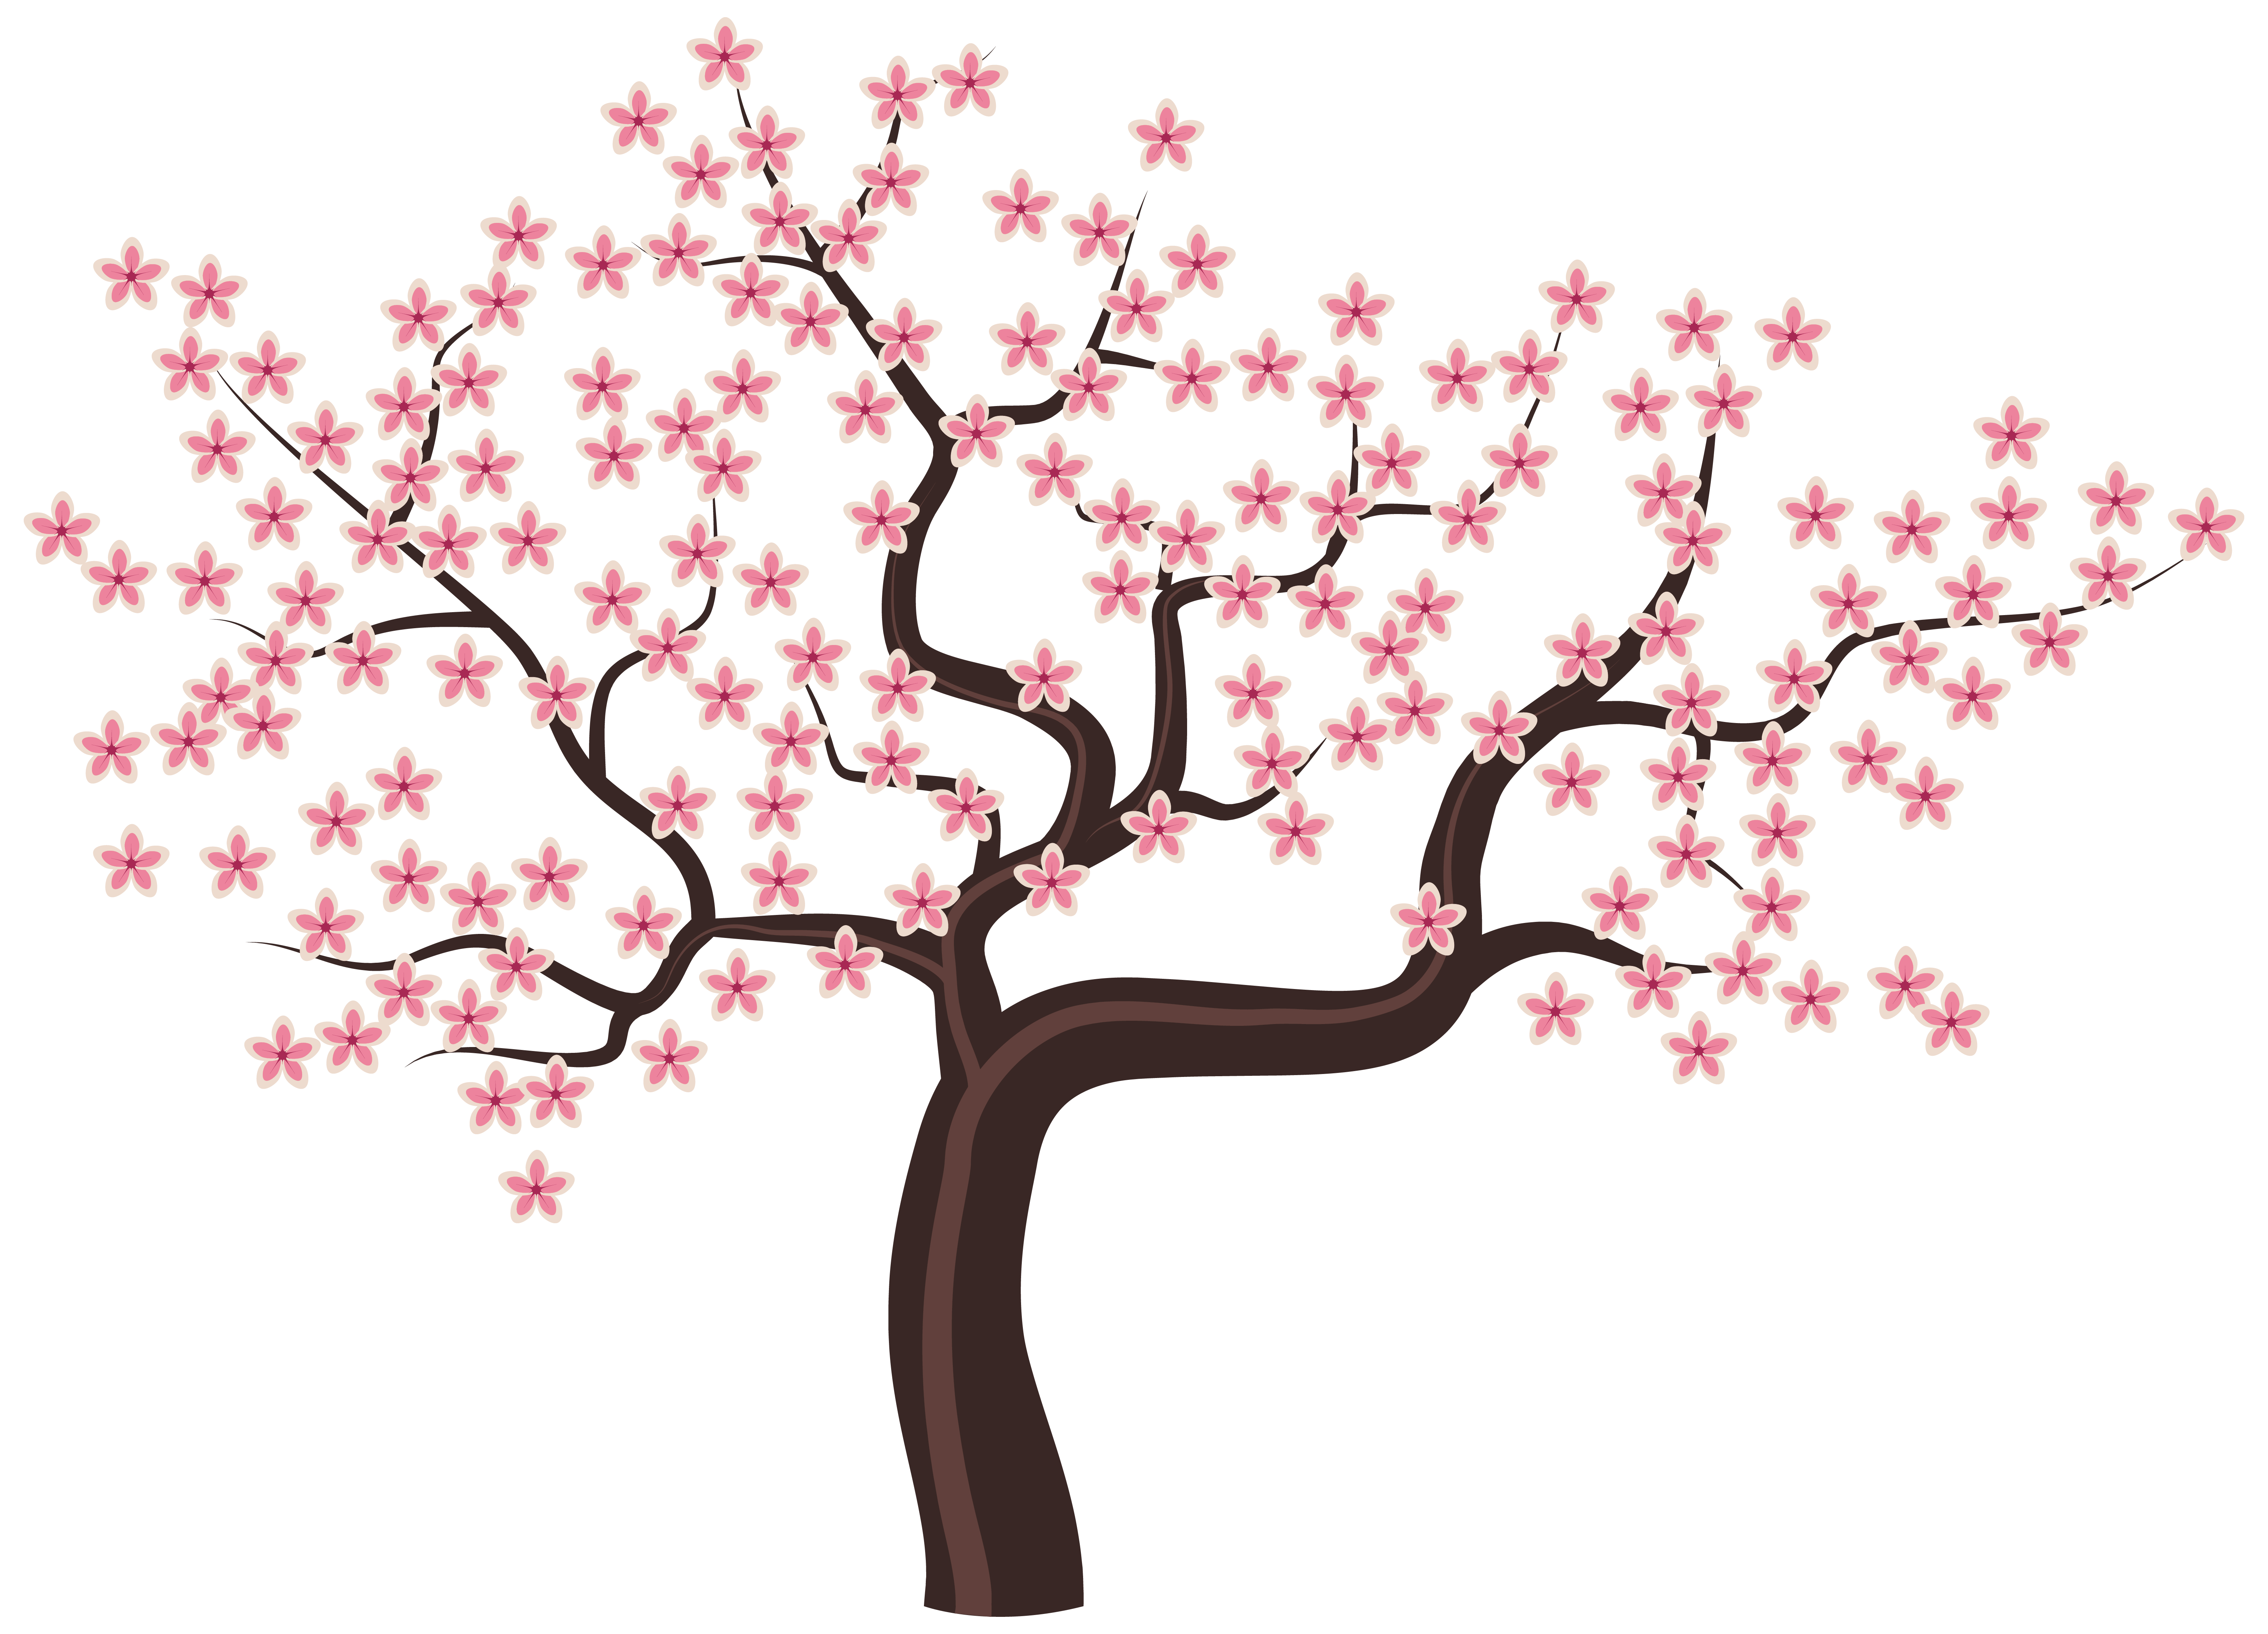 6215x4479 Tree With Flowers Png Clipart Imageu200b Gallery Yopriceville